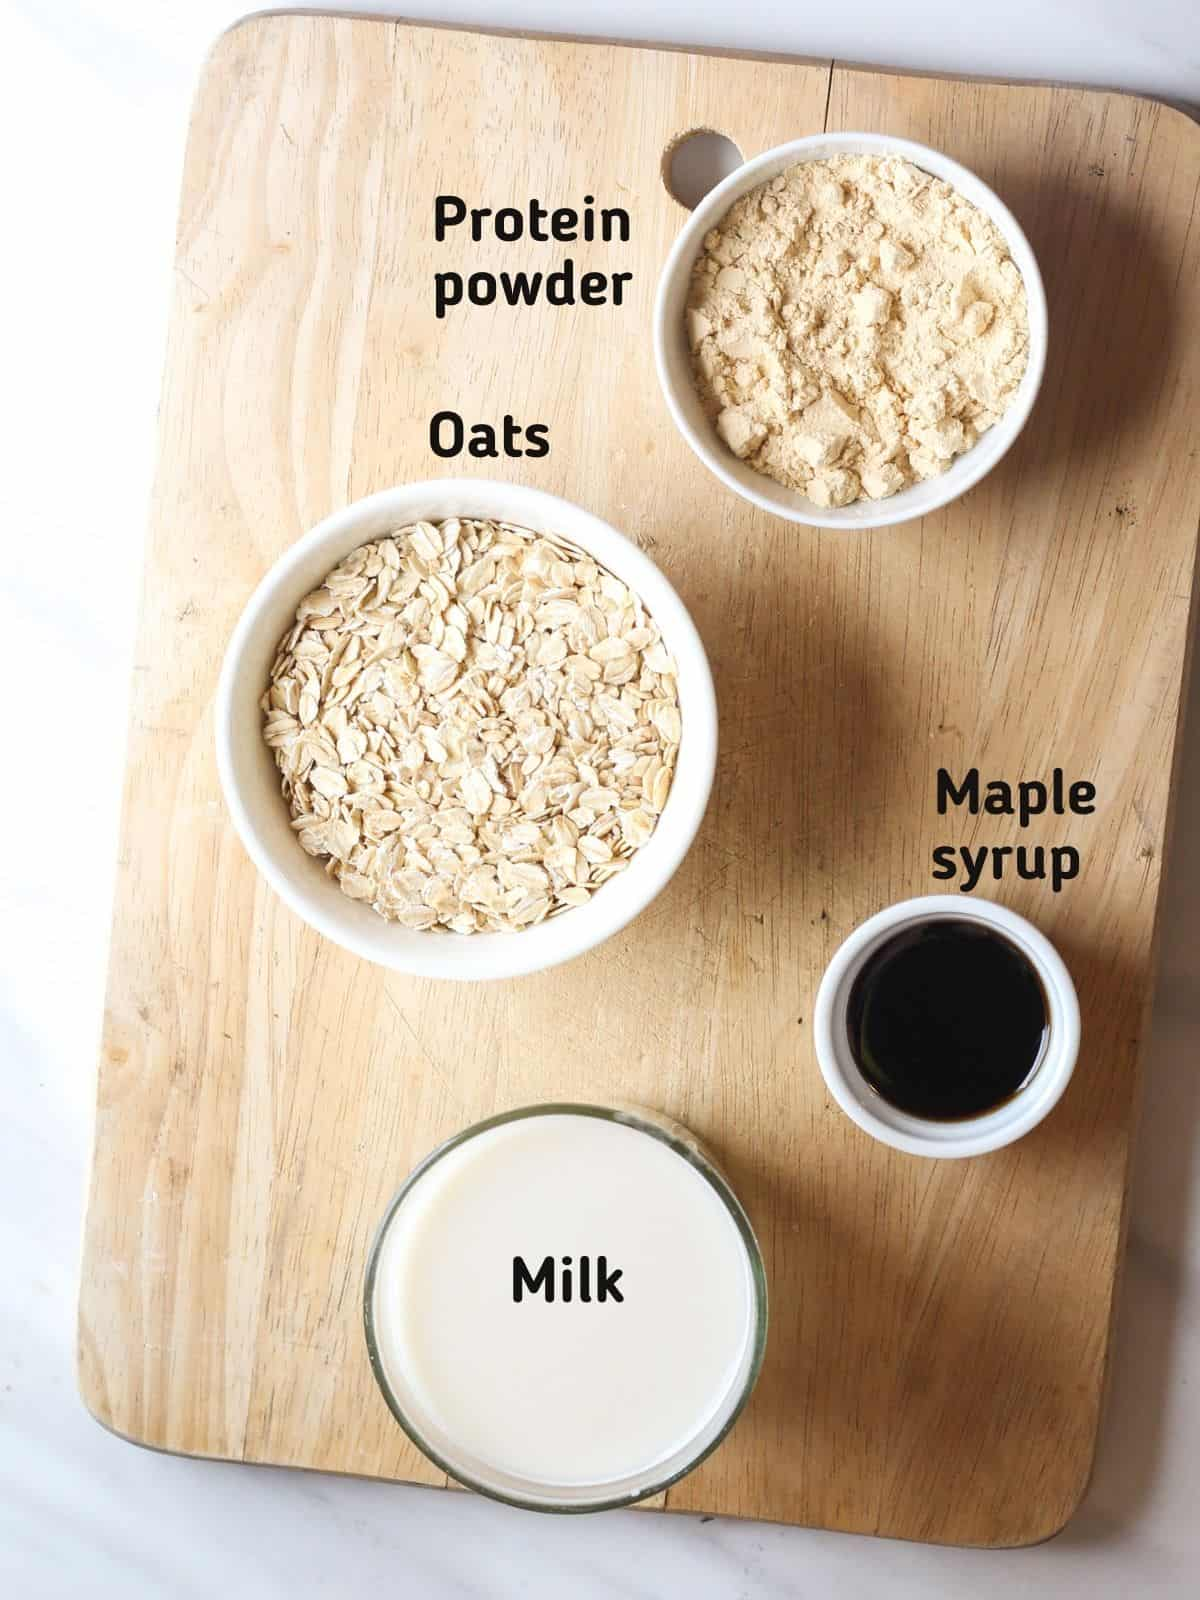 Ingredients needed like oats, protein powder, maple syrup and milk